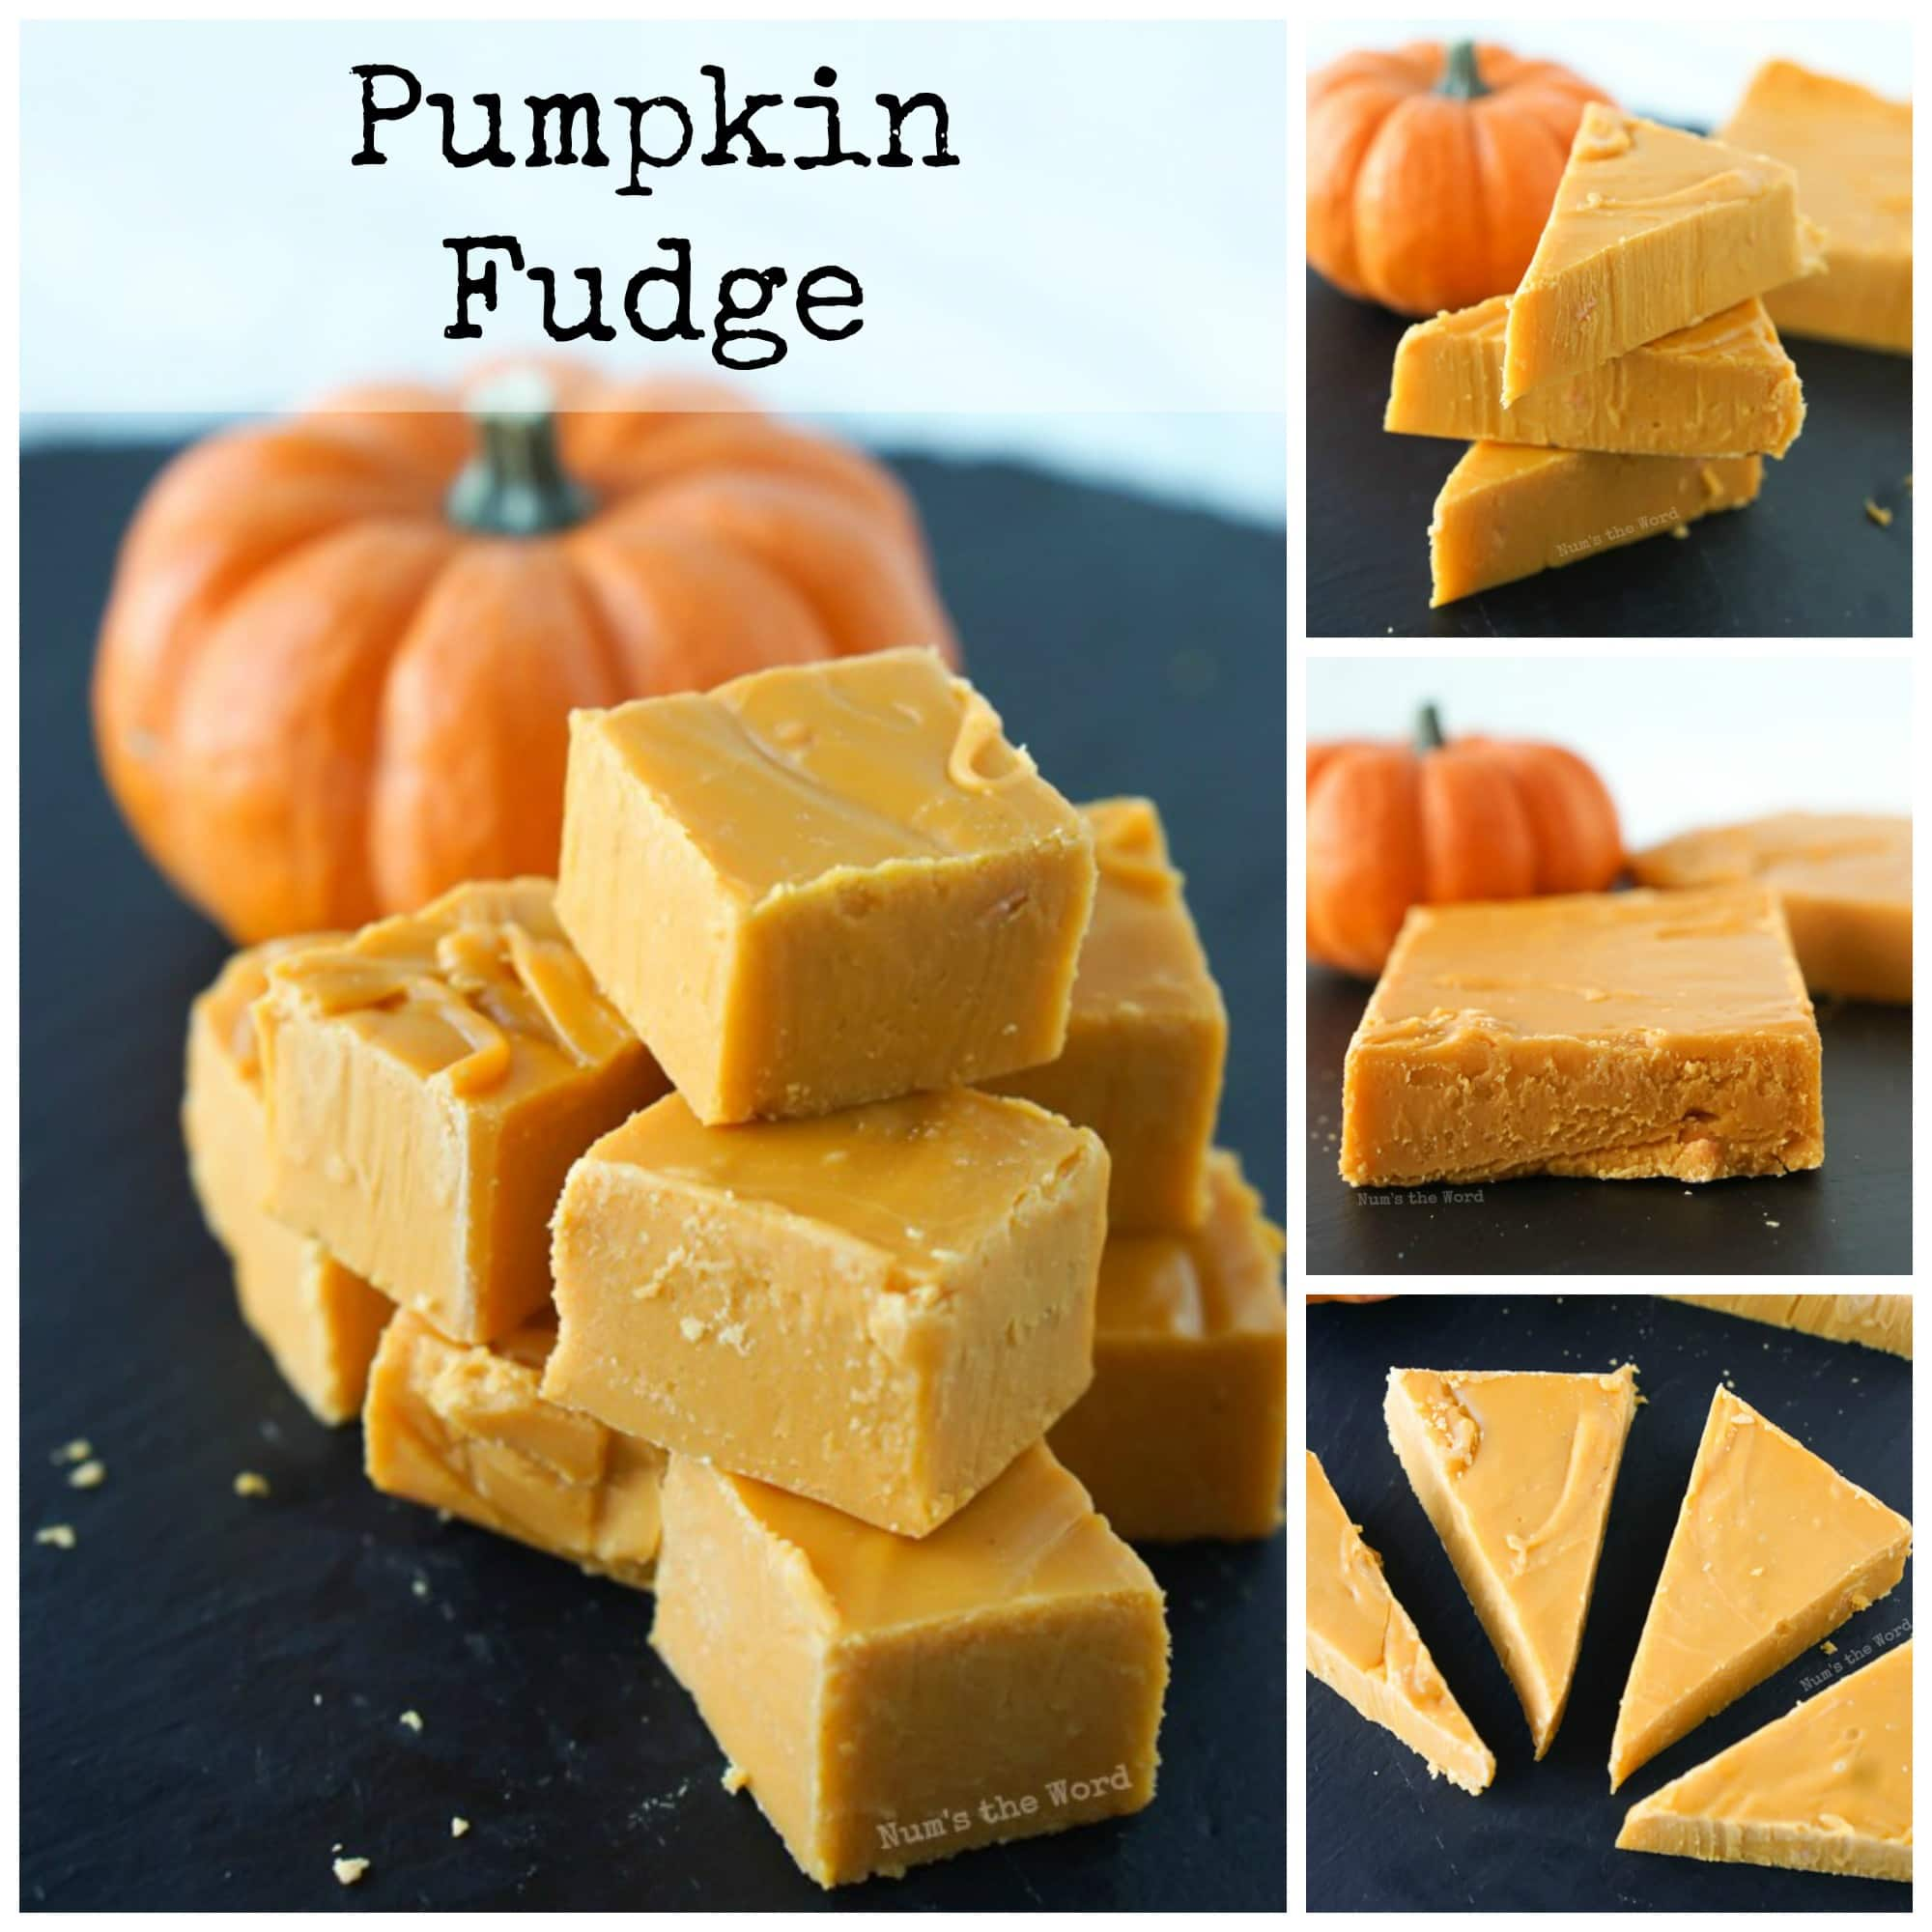 Pumpkin Fudge - NumsTheWord